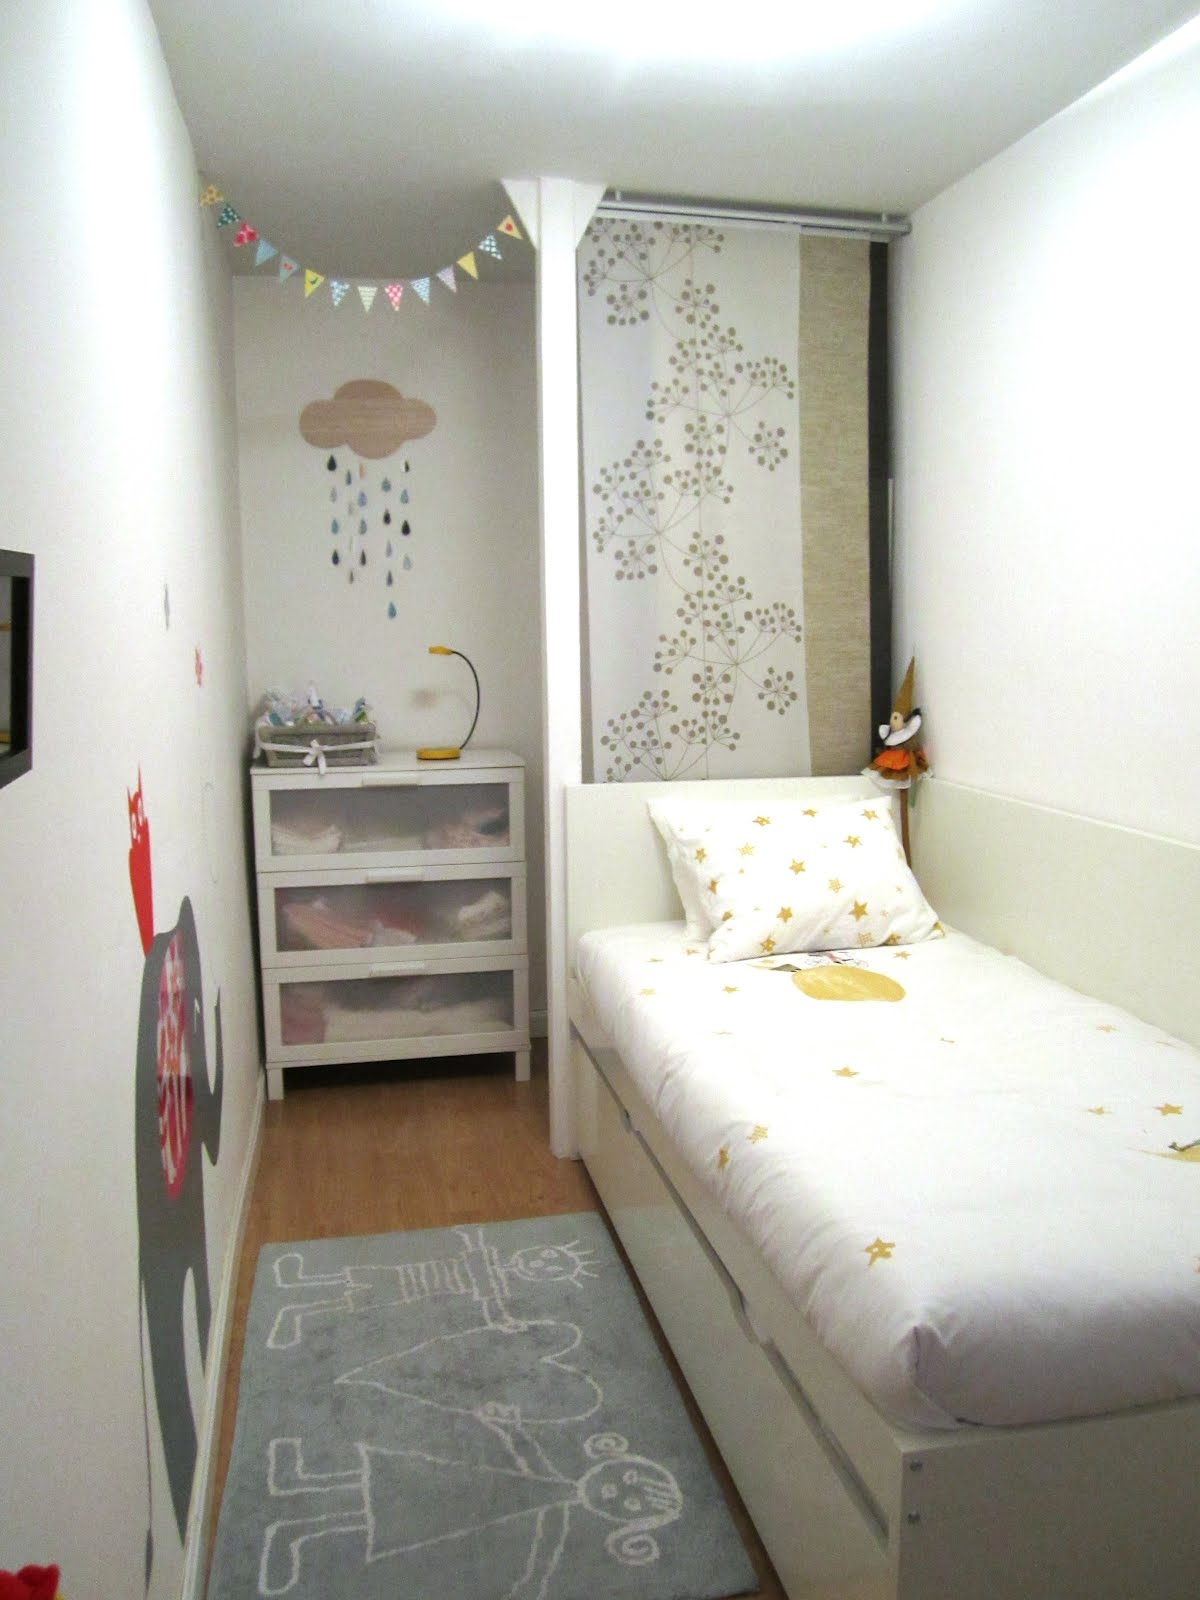 Naifandtastic decoraci n craft hecho a mano for Single bedroom ideas